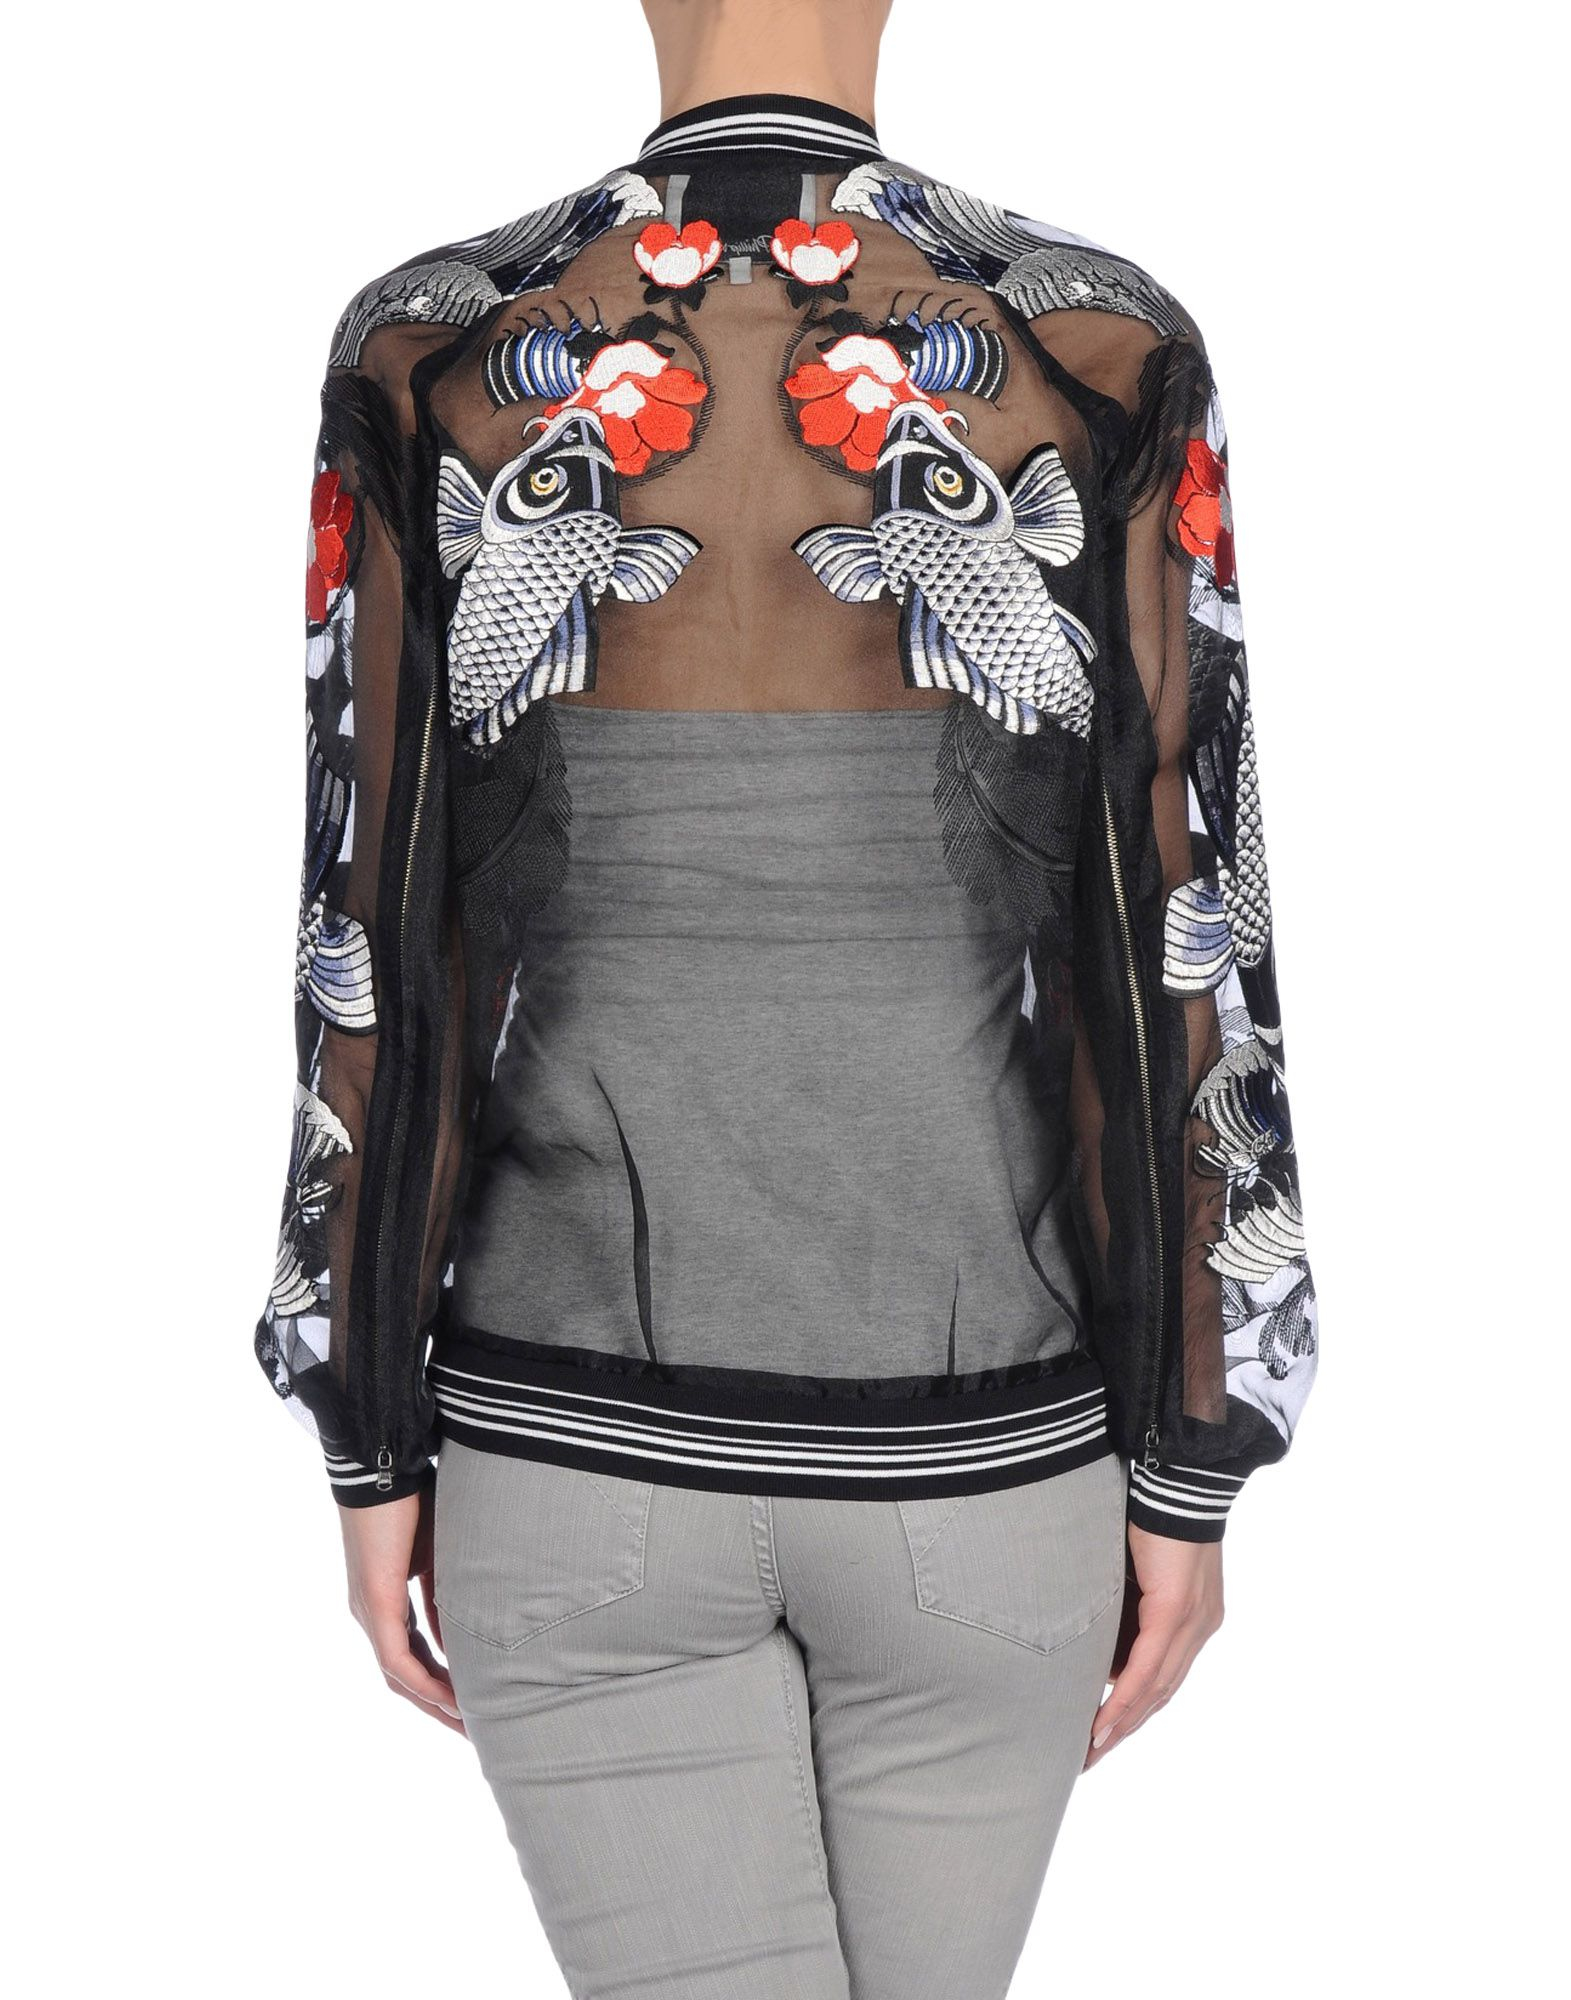 3.1 phillip lim Tattoo Embroidered Organza Jacket in Nude